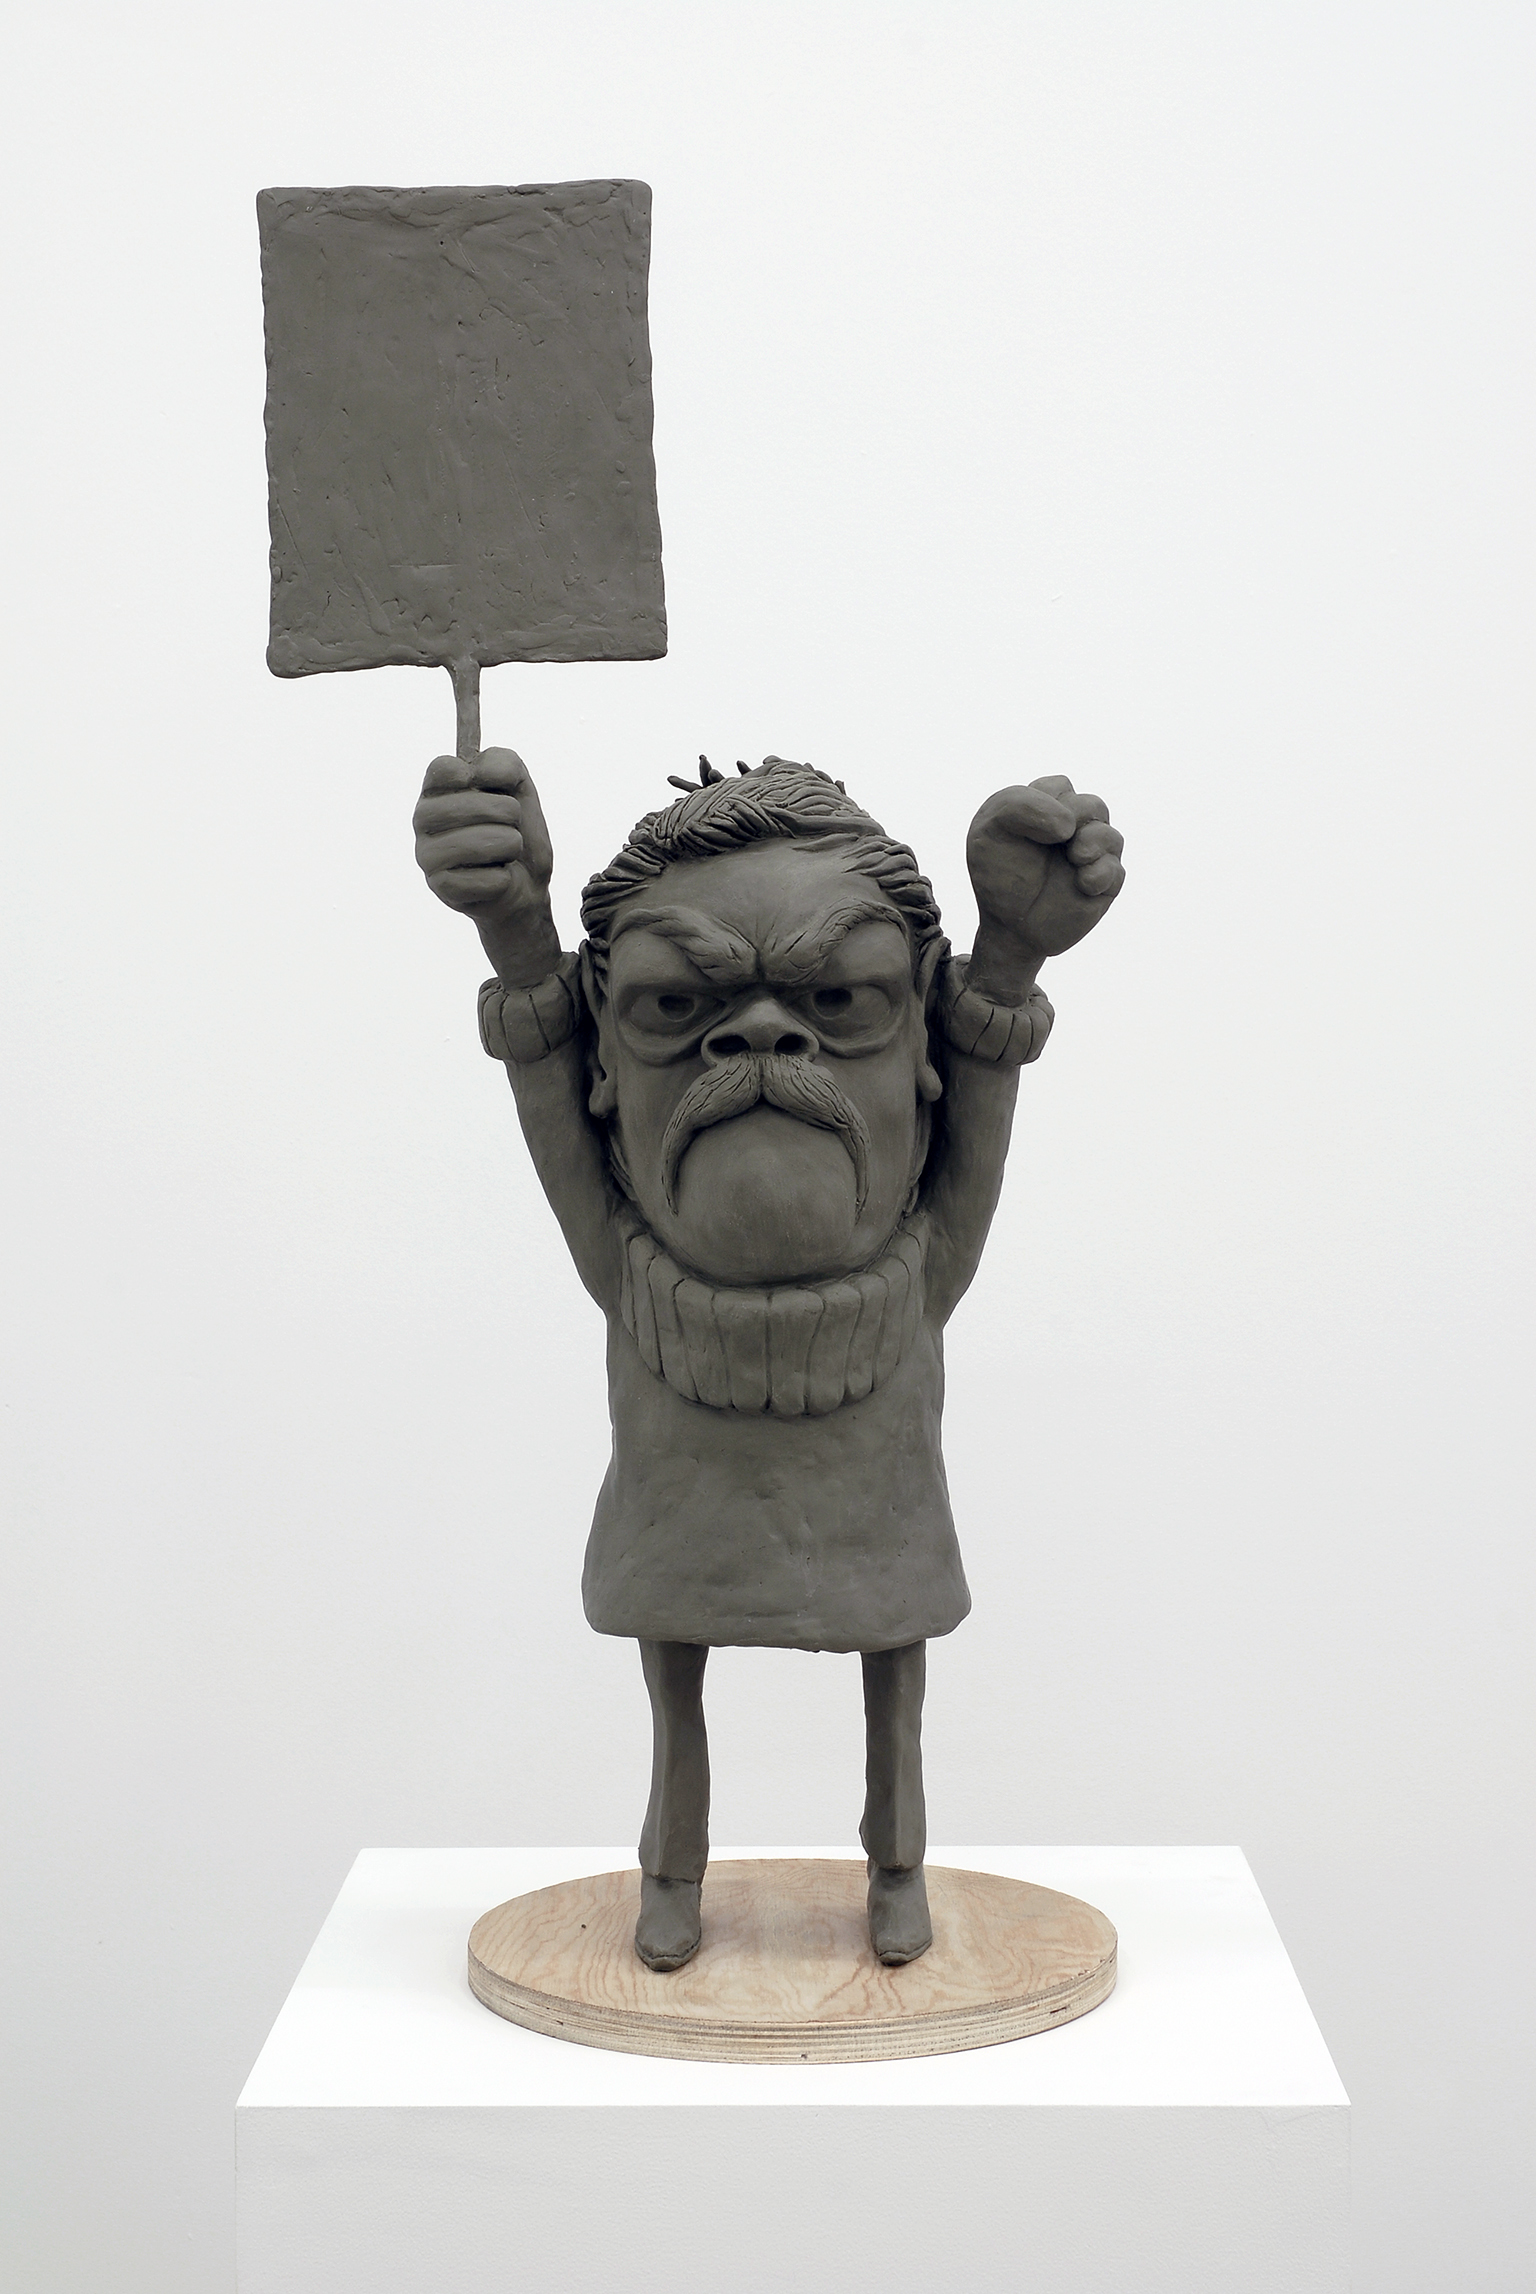 Alex Morrison, Proposal for a New Monument at Freedom Square, 2007, modelling clay and wood, 32 x 15 x 12 in. (81 x 38 x 30 cm) by